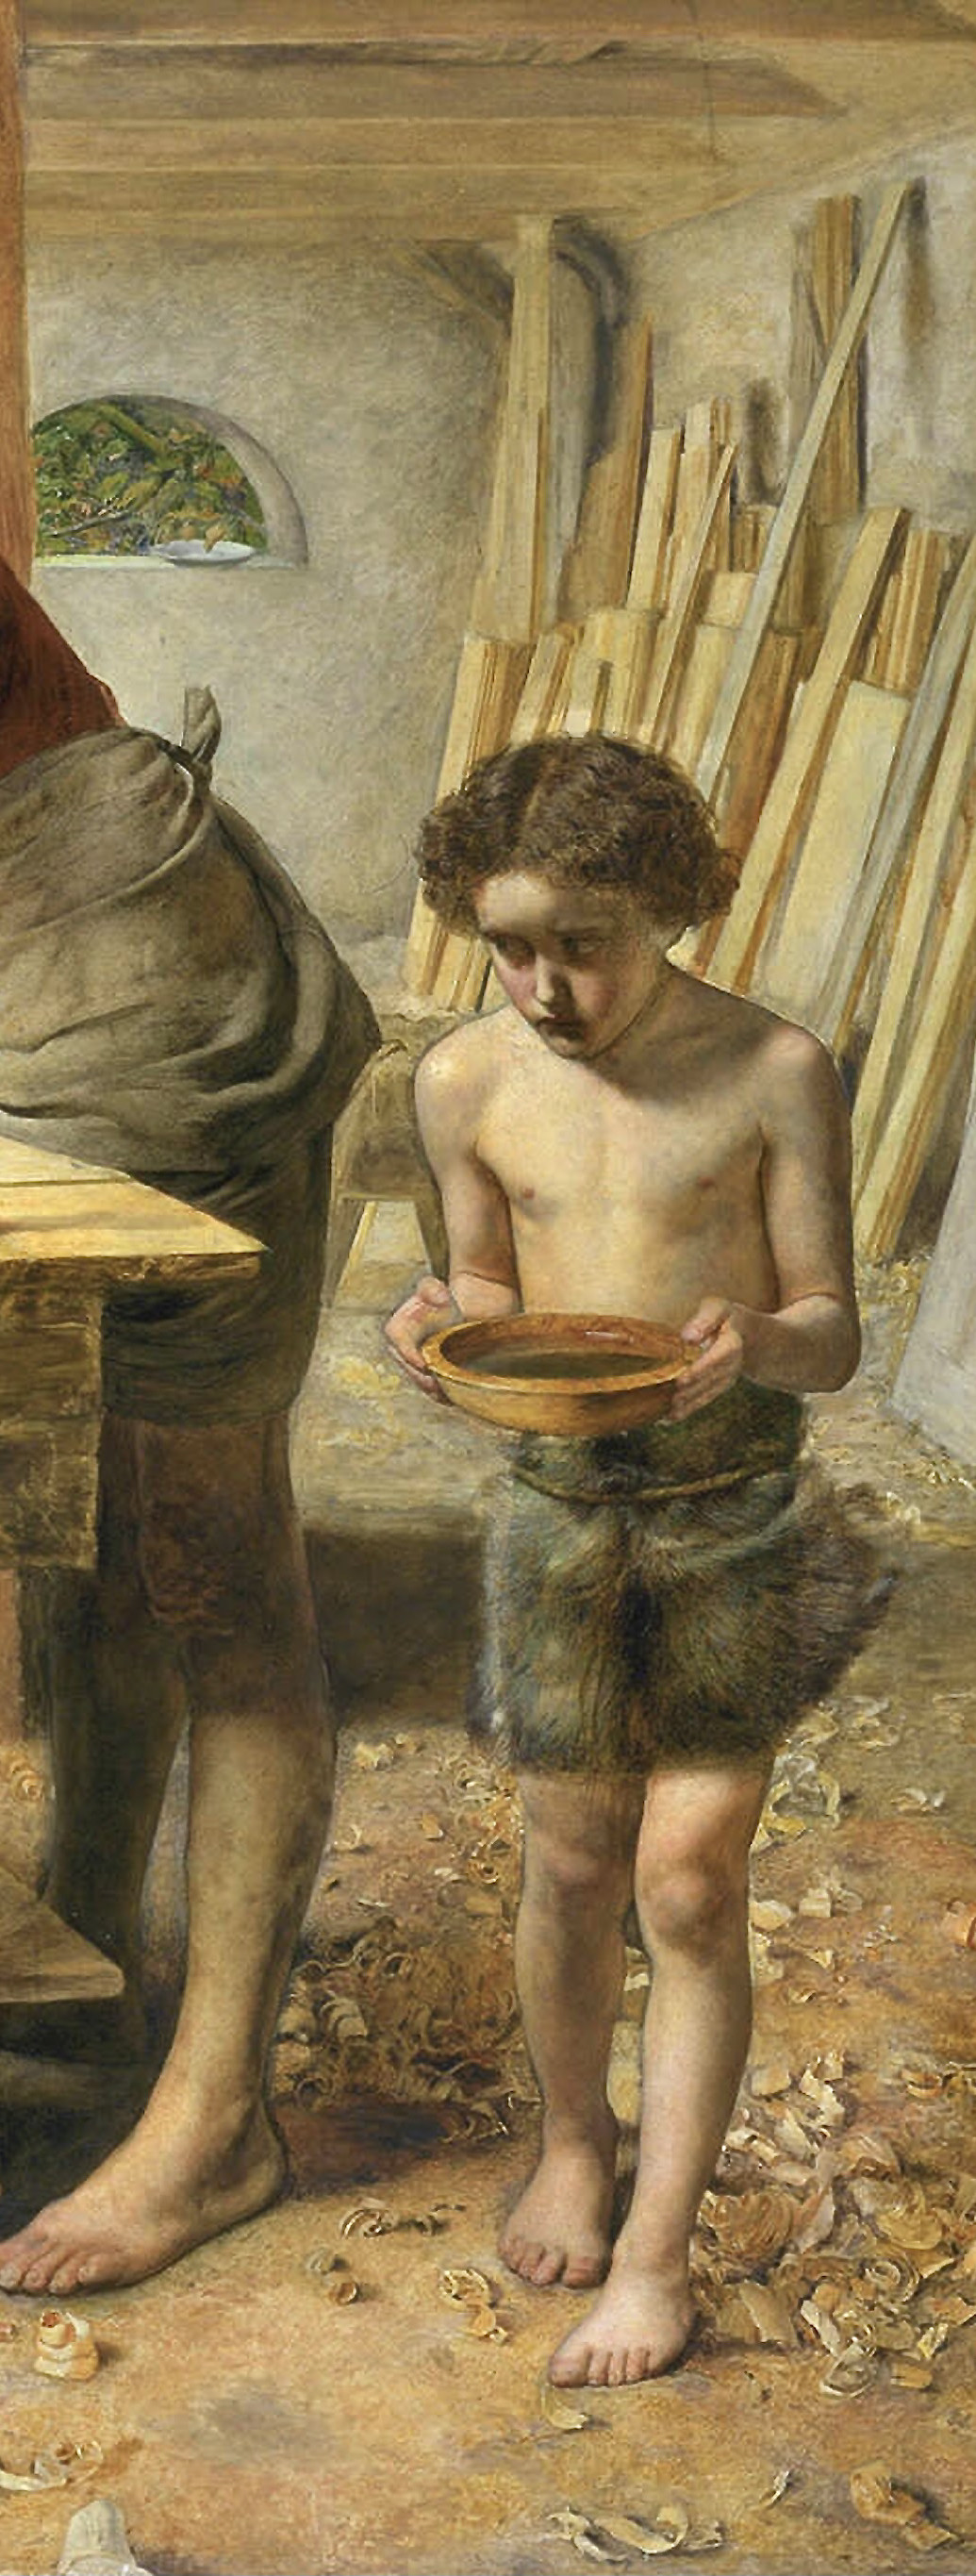 John_Everett_Millais_-_Christ_in_the_House_of_His_Parents_(`The_Carpenter's_Shop')_-_Google_Art_Project